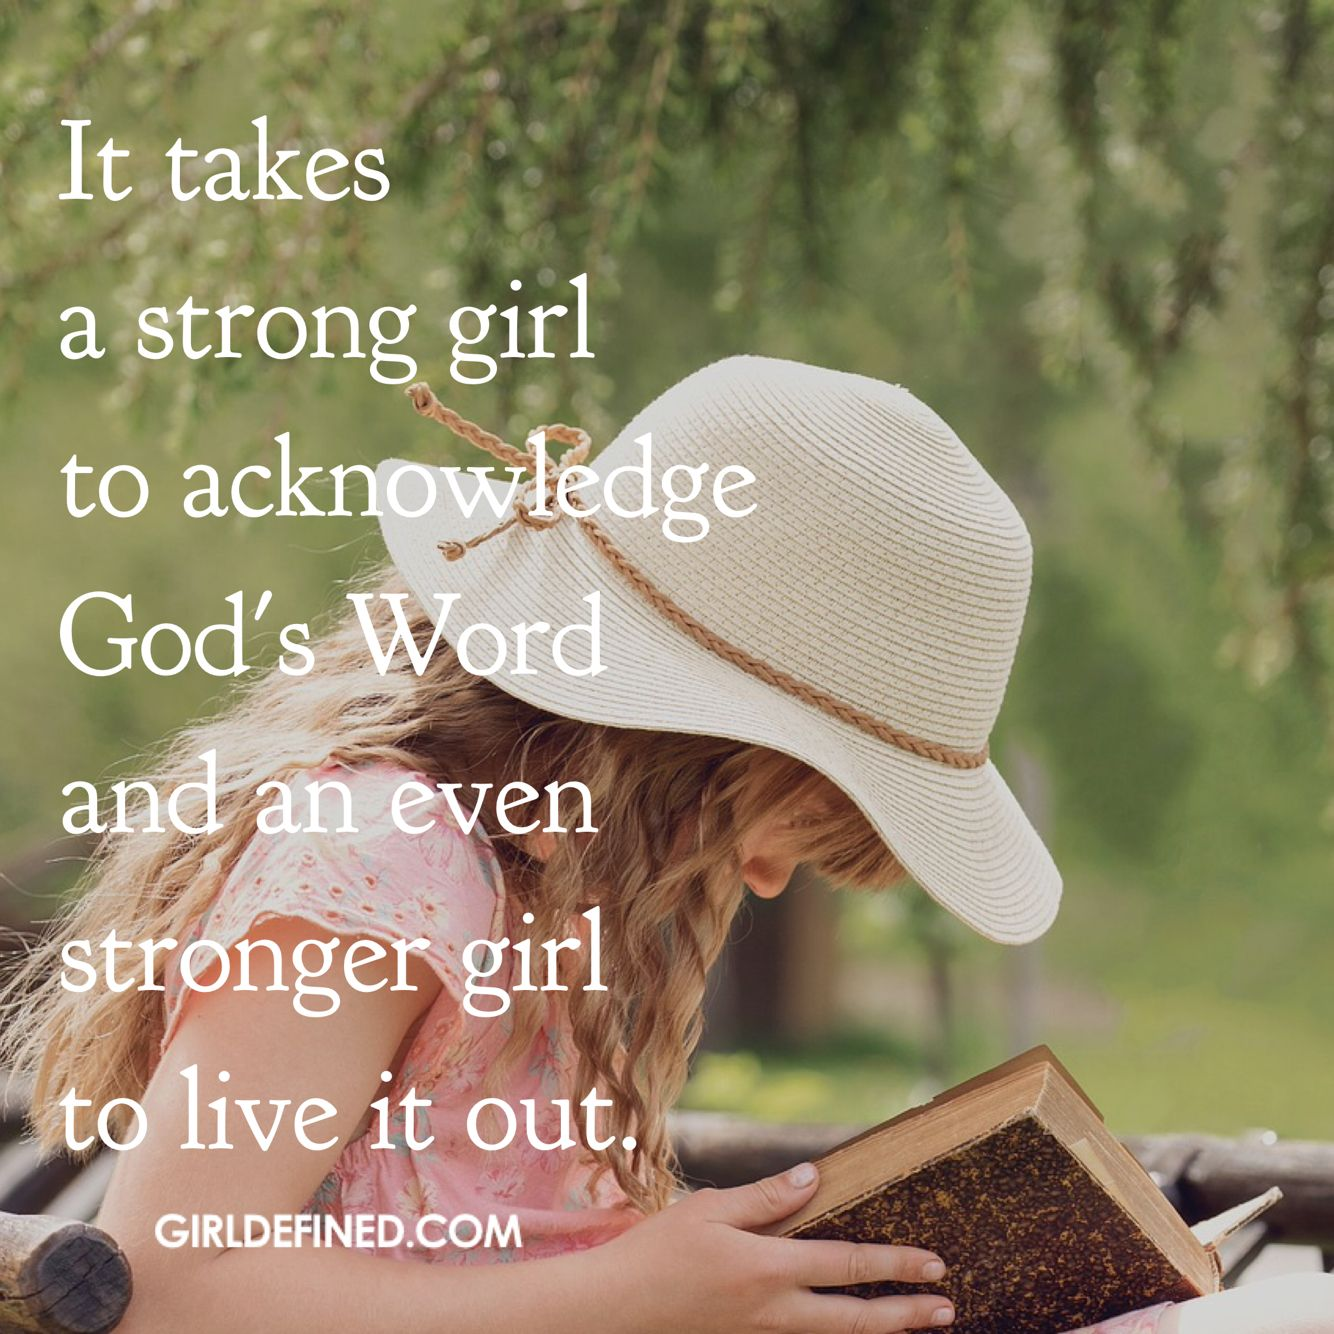 Christian Inspirational Quotes Life It Takes A Strong Girl To Acknowledge God's Word And An Even